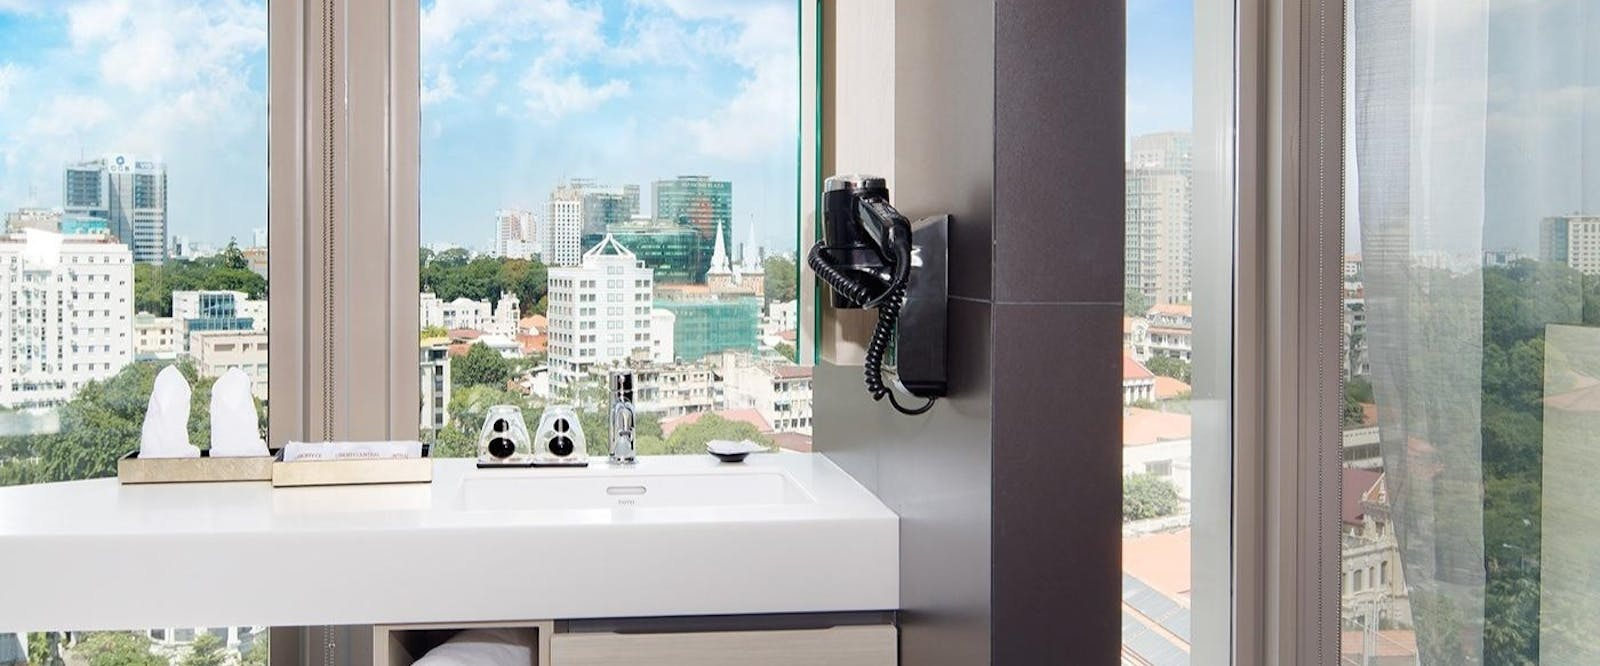 Bathroom With A View at Liberty Central Saigon Citypoint Hotel, Vietnam